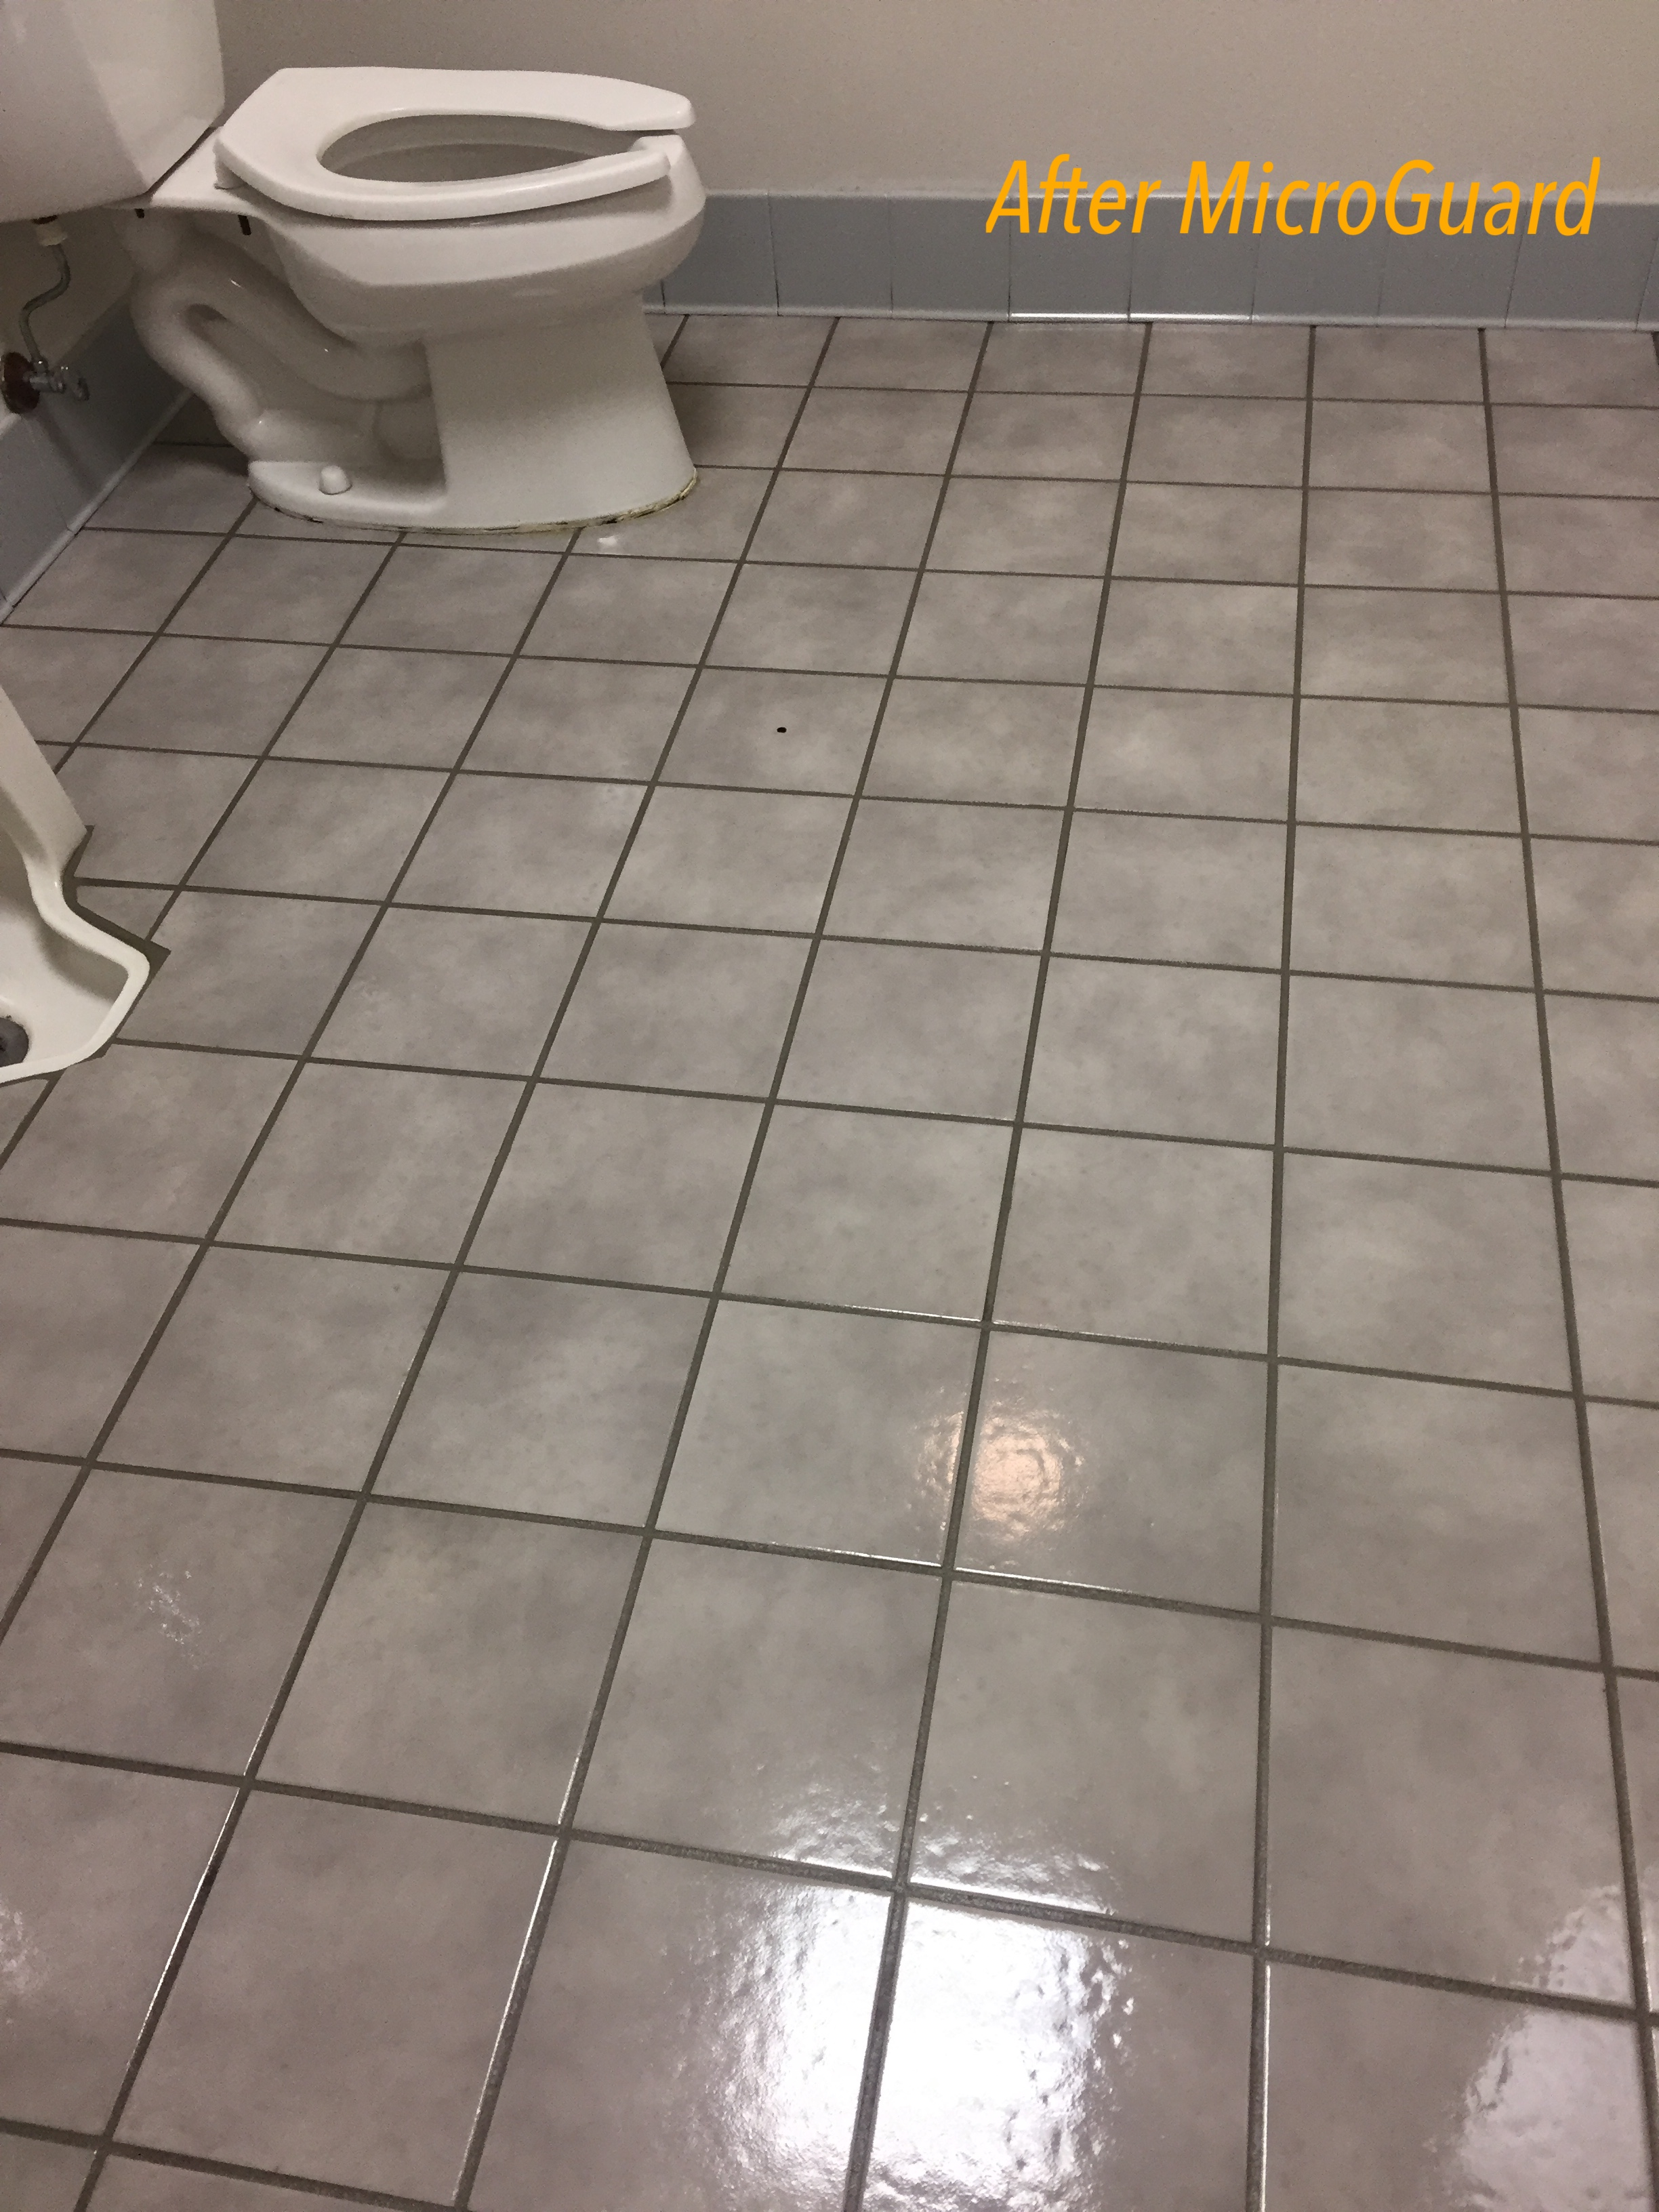 3 Commercial restroom coated with Microguard.JPG